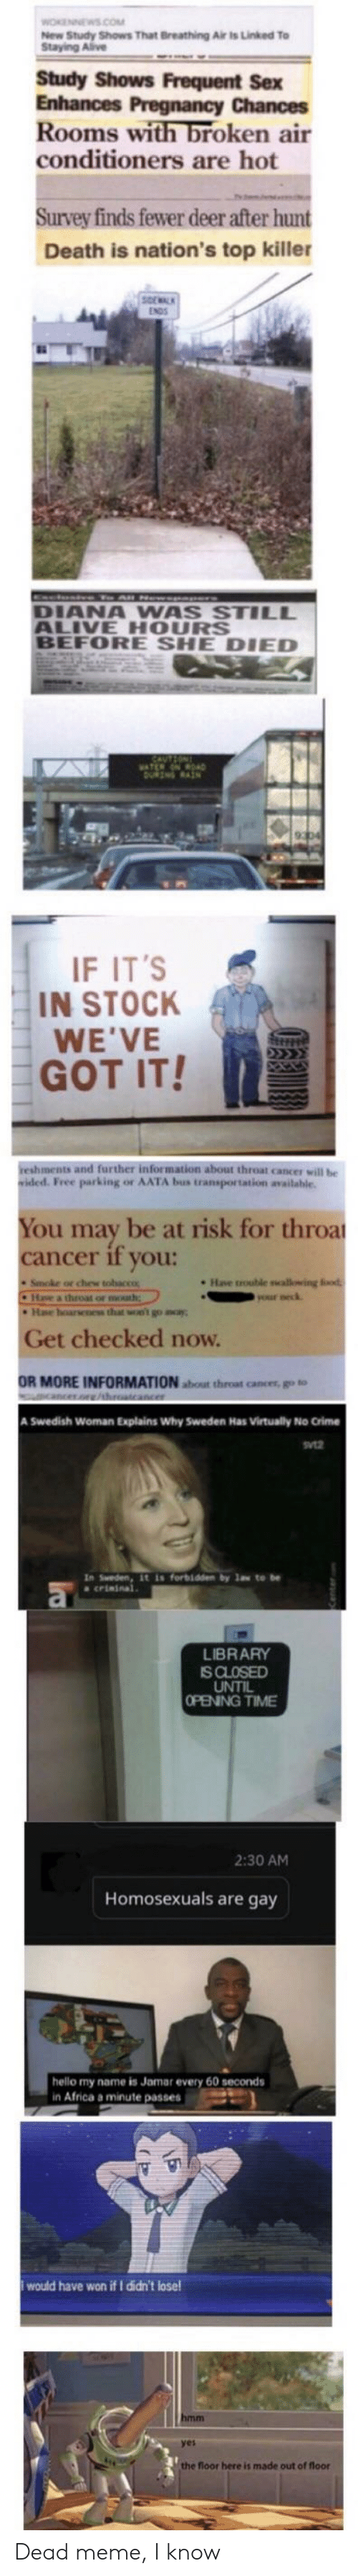 throat cancer: WOKENNEWS.COM  New Study Shows That Breathing Air is Linked To  Staying Alive  Study Shows Frequent Sex  Enhances Pregnancy Chances  Rooms with broken air  conditioners are hot  Survey finds fewer deer after hunt  Death is nation's top killer  tve To AnNewepe  DIANA WAS STILL  ALIVE HOURS  BEFORE SHE DIED  SAVTRON  ATERNRDAD  DuNN RASN  IF IT'S  IN STOCK  WE'VE  GOT IT!  reshments and further information about throat cancer will be  ided. Free parking or AATA bus transportation available.  You may be at risk for throa  cancer if you:  Have trouble swallowing fiood  Smoke or chew tobacco  Hase a throat or mouth;  He hoarseoes that wn' go away  your neck  Get checked now.  OR MORE INFORMATION aout throat cancer, go to  mcancer.org/hroatcancer  A Swedish Woman Explains Why Sweden Has Virtually No Crime  In Sweden, it is forbidden by law to be  crininal  LIBRARY  IS CLOSED  UNTIL  OPENING TIME  2:30 AM  Homosexuals are gay  hello my name is Jamar every 60 seconds  in Africa a minute passes  would have won if I didn't lose!  hmm  the floor here is made out of floor Dead meme, I know